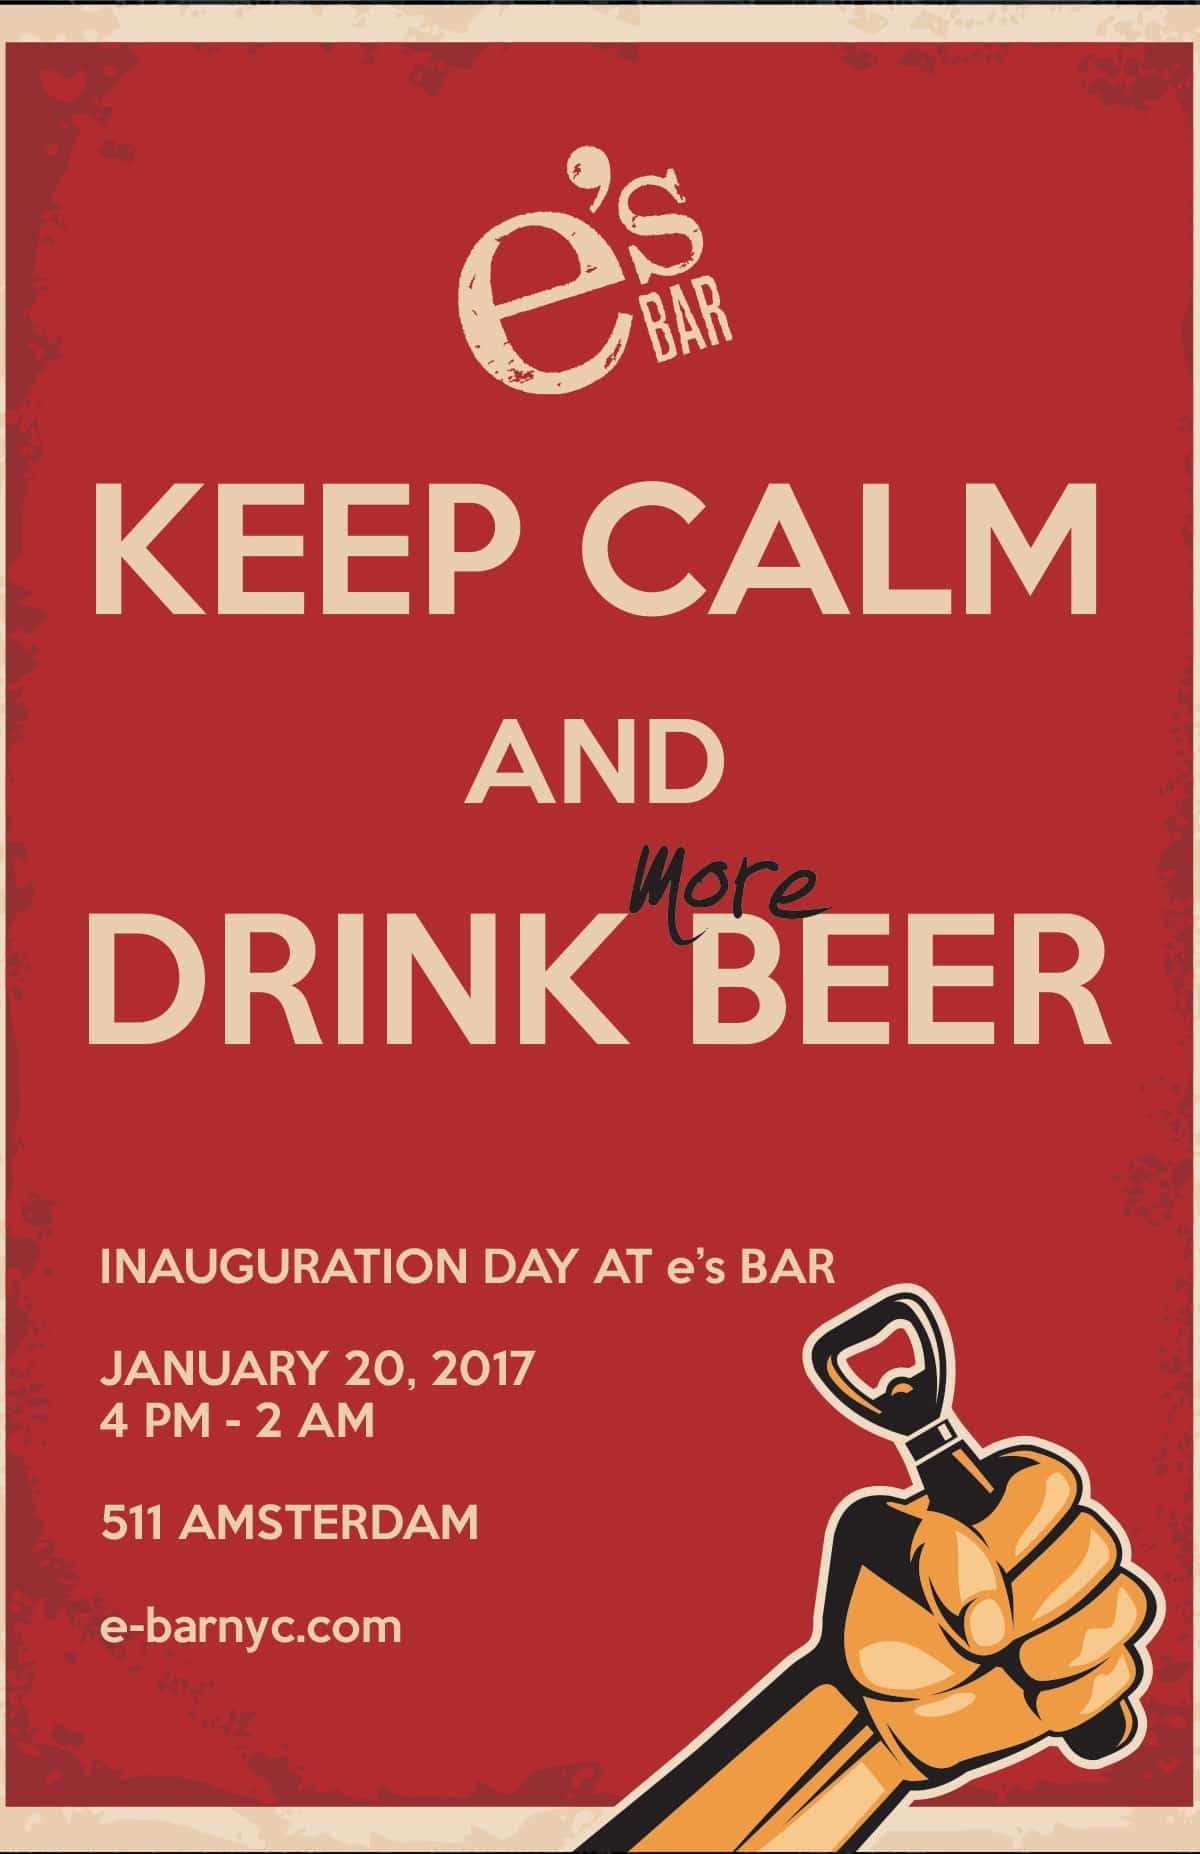 Inauguration Day poster - Keep Calm and Drink (more) Beer at e's BAR